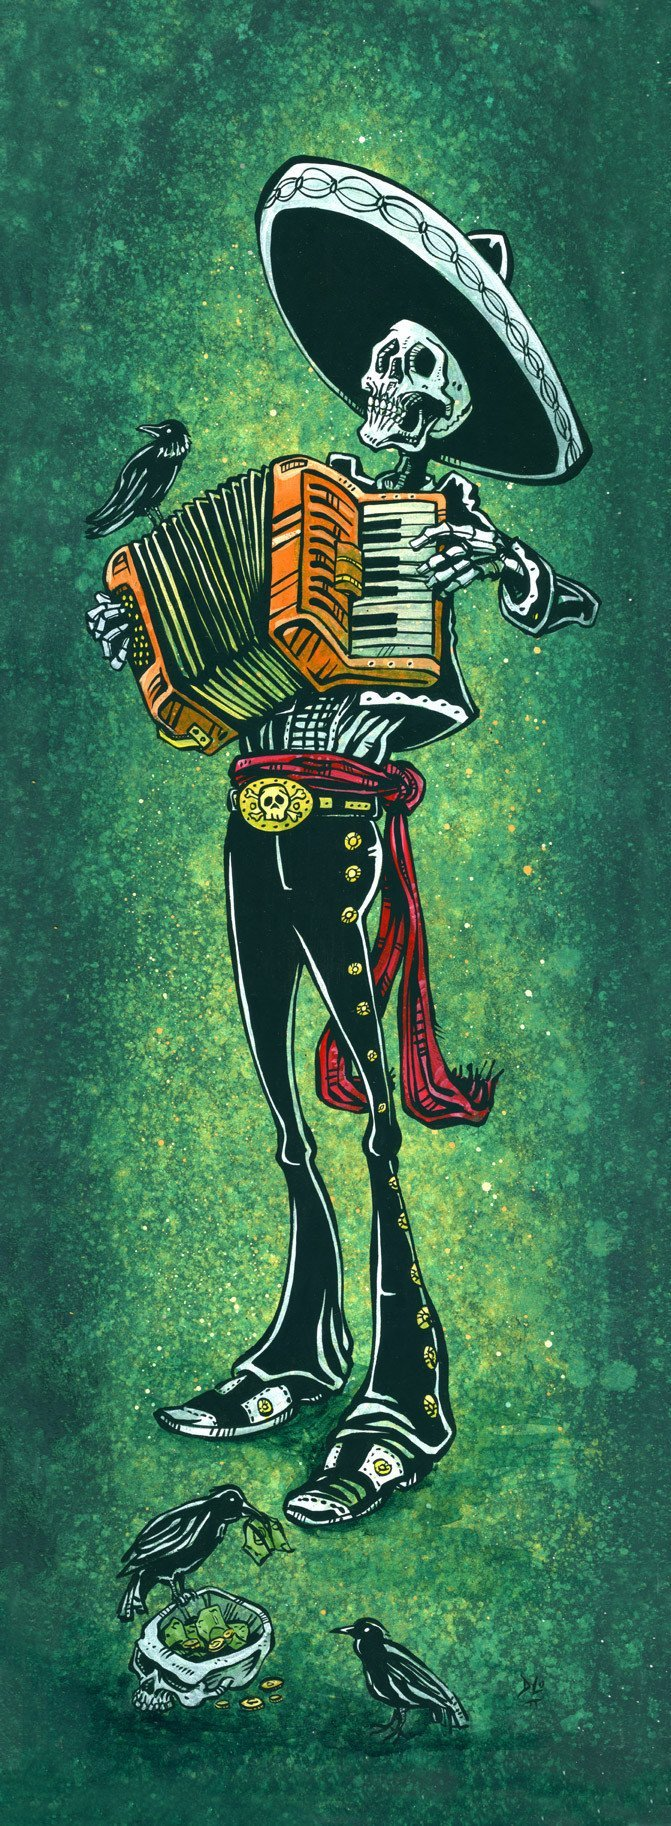 Blissful Bellows by Day of the Dead Artist David Lozeau, Day of the Dead Art, Dia de los Muertos Art, Dia de los Muertos Artist